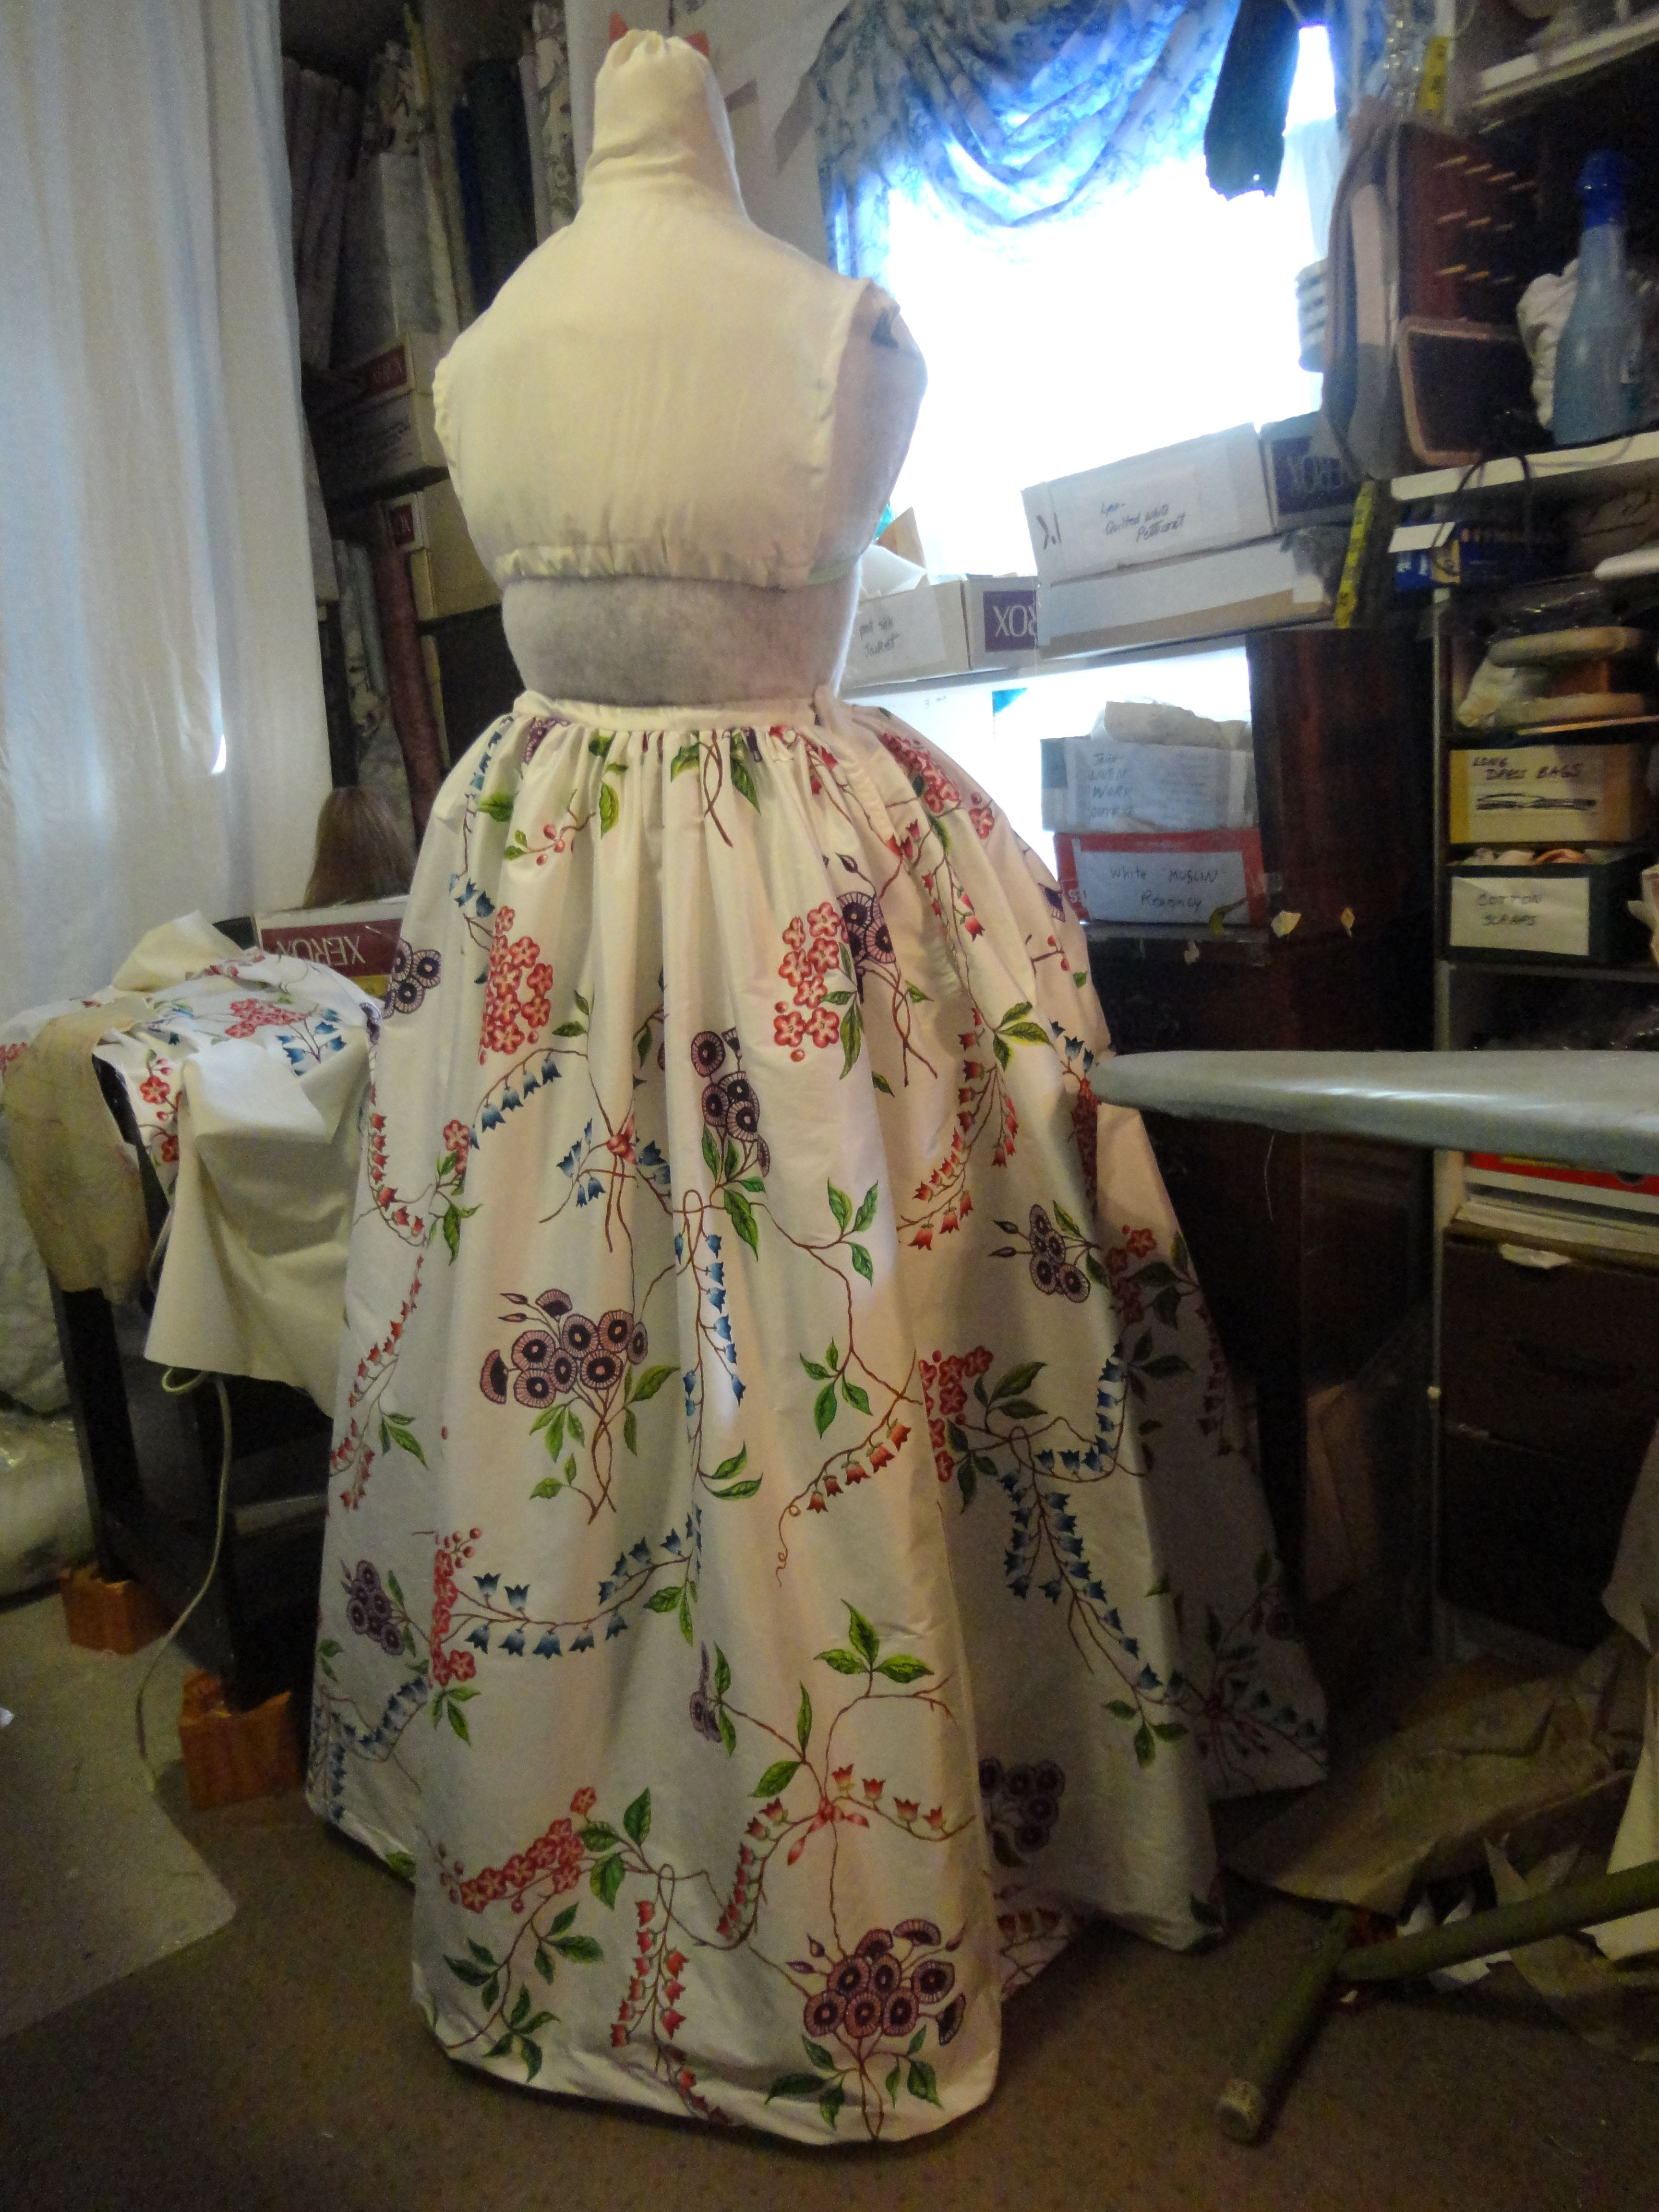 Hand-painted Dress. Like the original, a two-piece ensemble. The petticoat motifs were places and cut from fabric panels to match the placing of the 1780's designs.